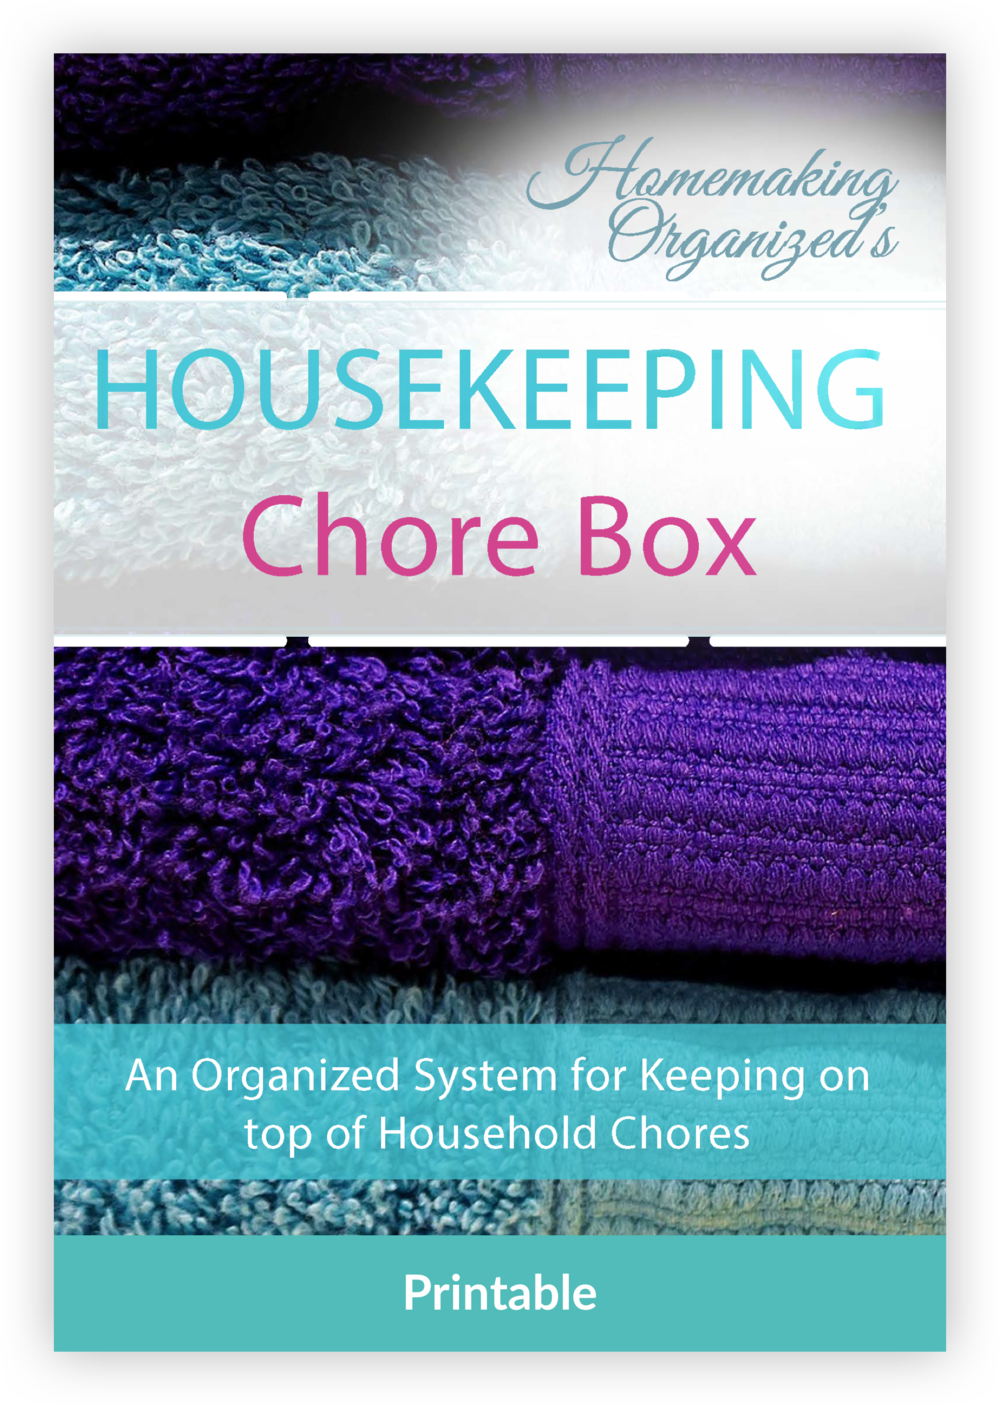 HousekeepingChoreBox Mockup - Copy.png